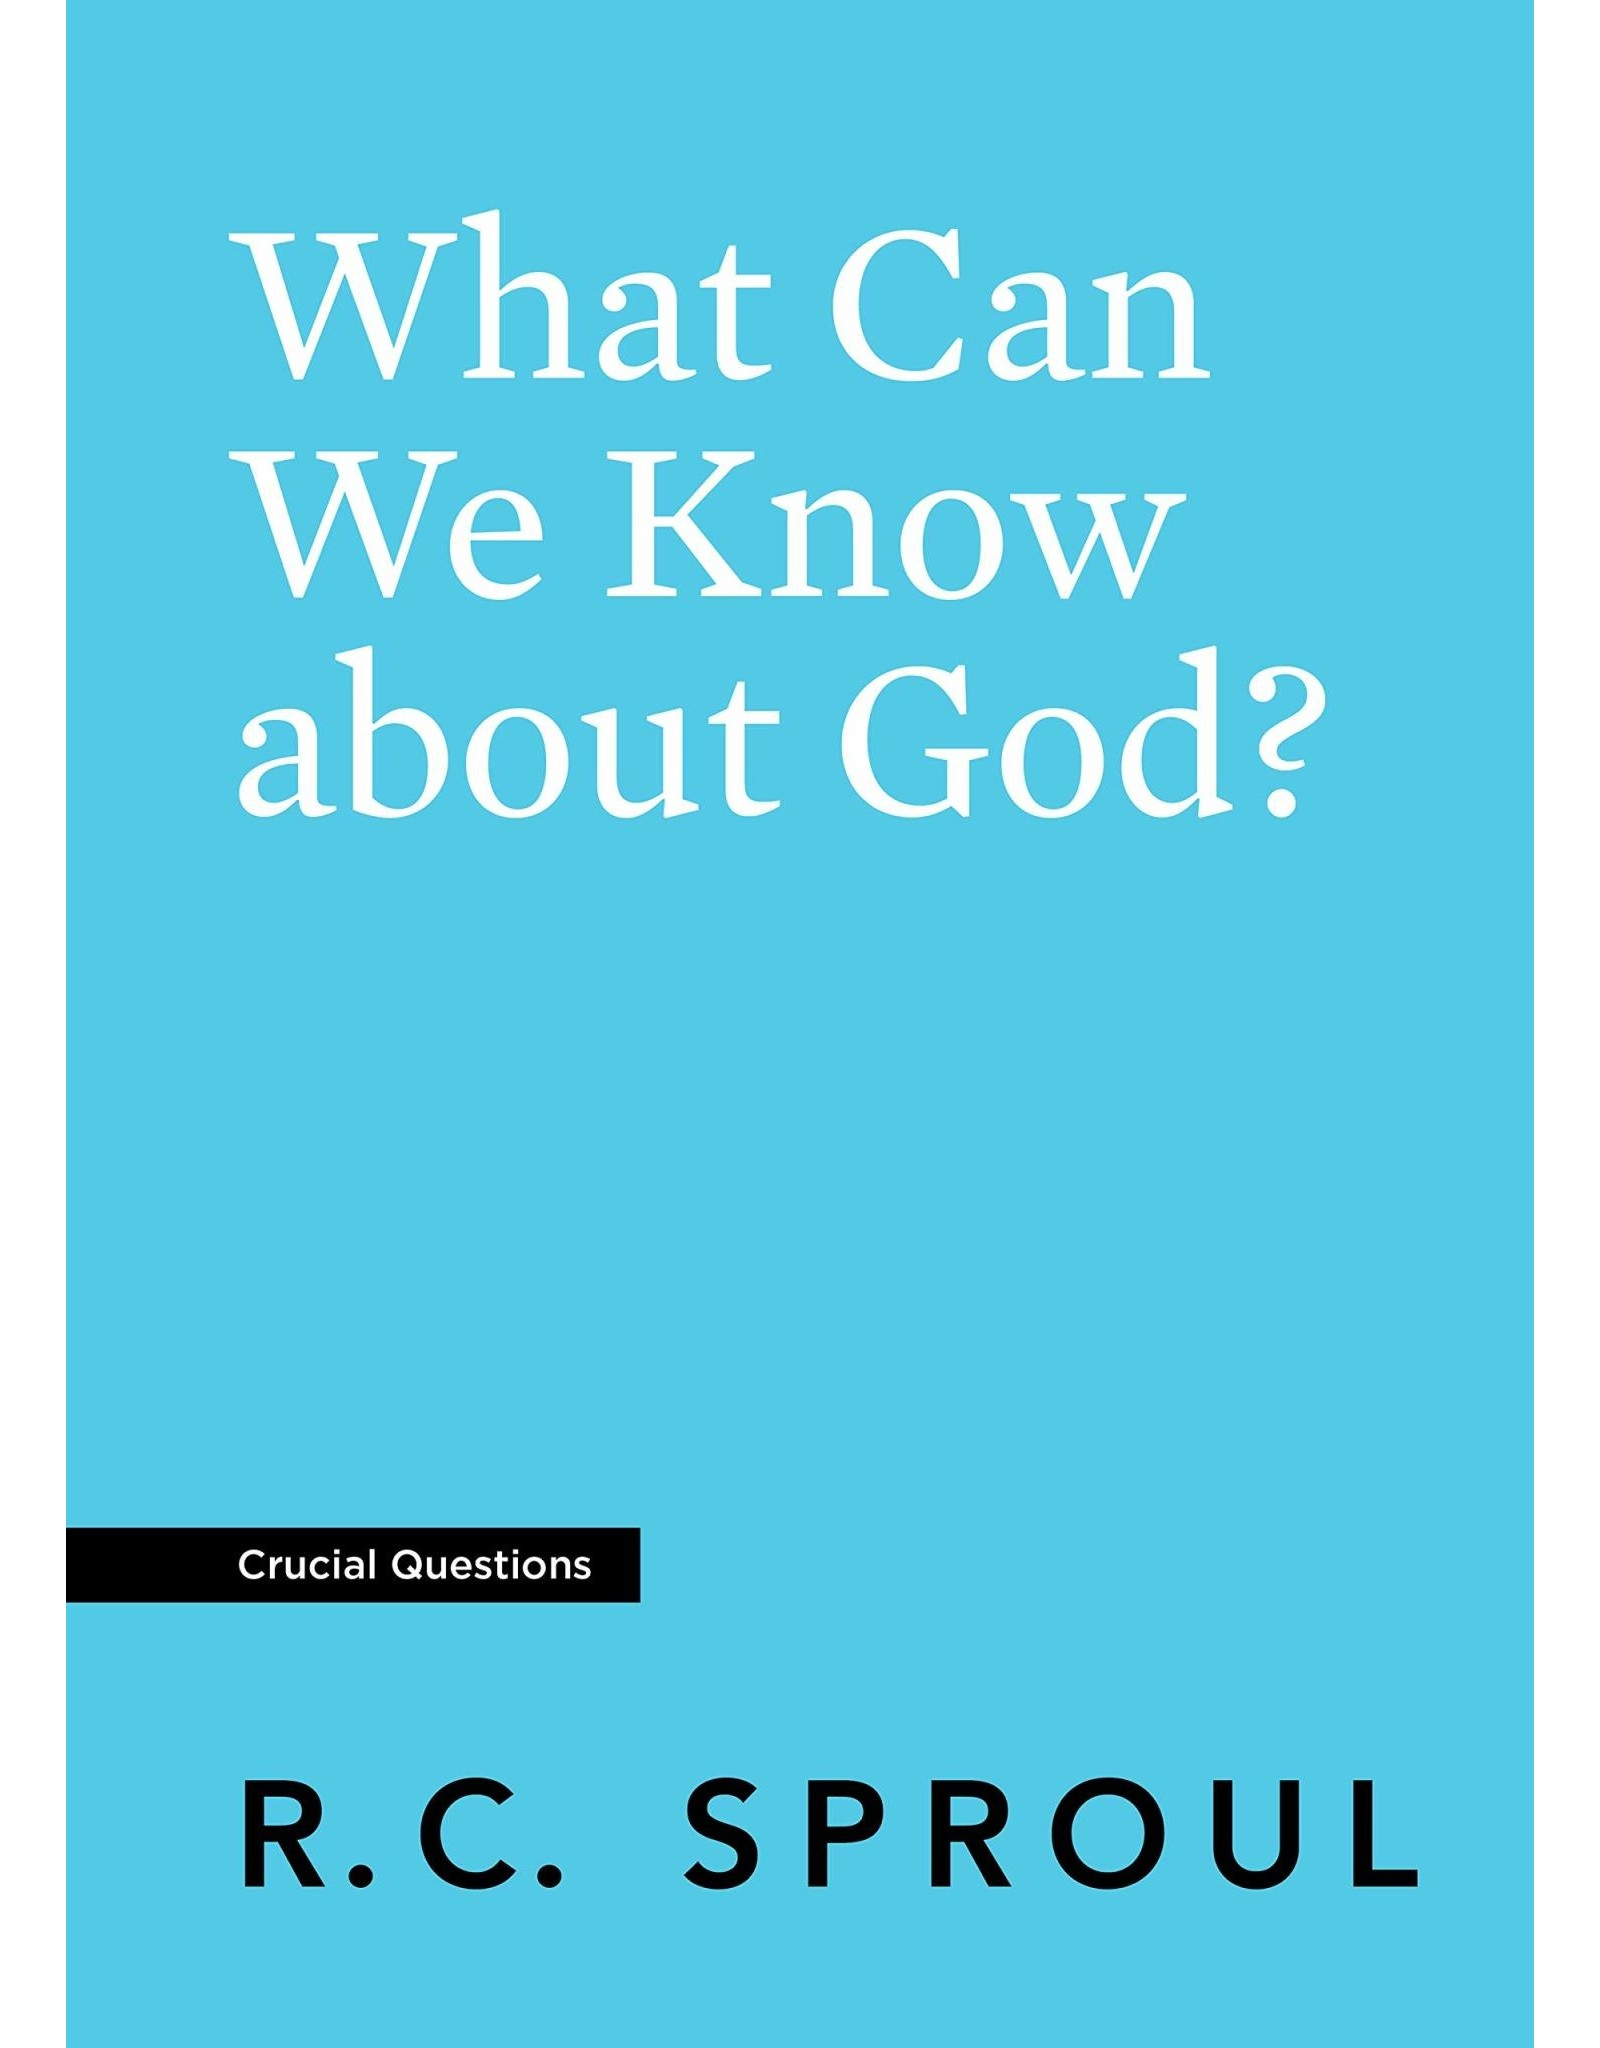 Ligonier / Reformation Trust What Can We Know about God? (Crucial Questions)